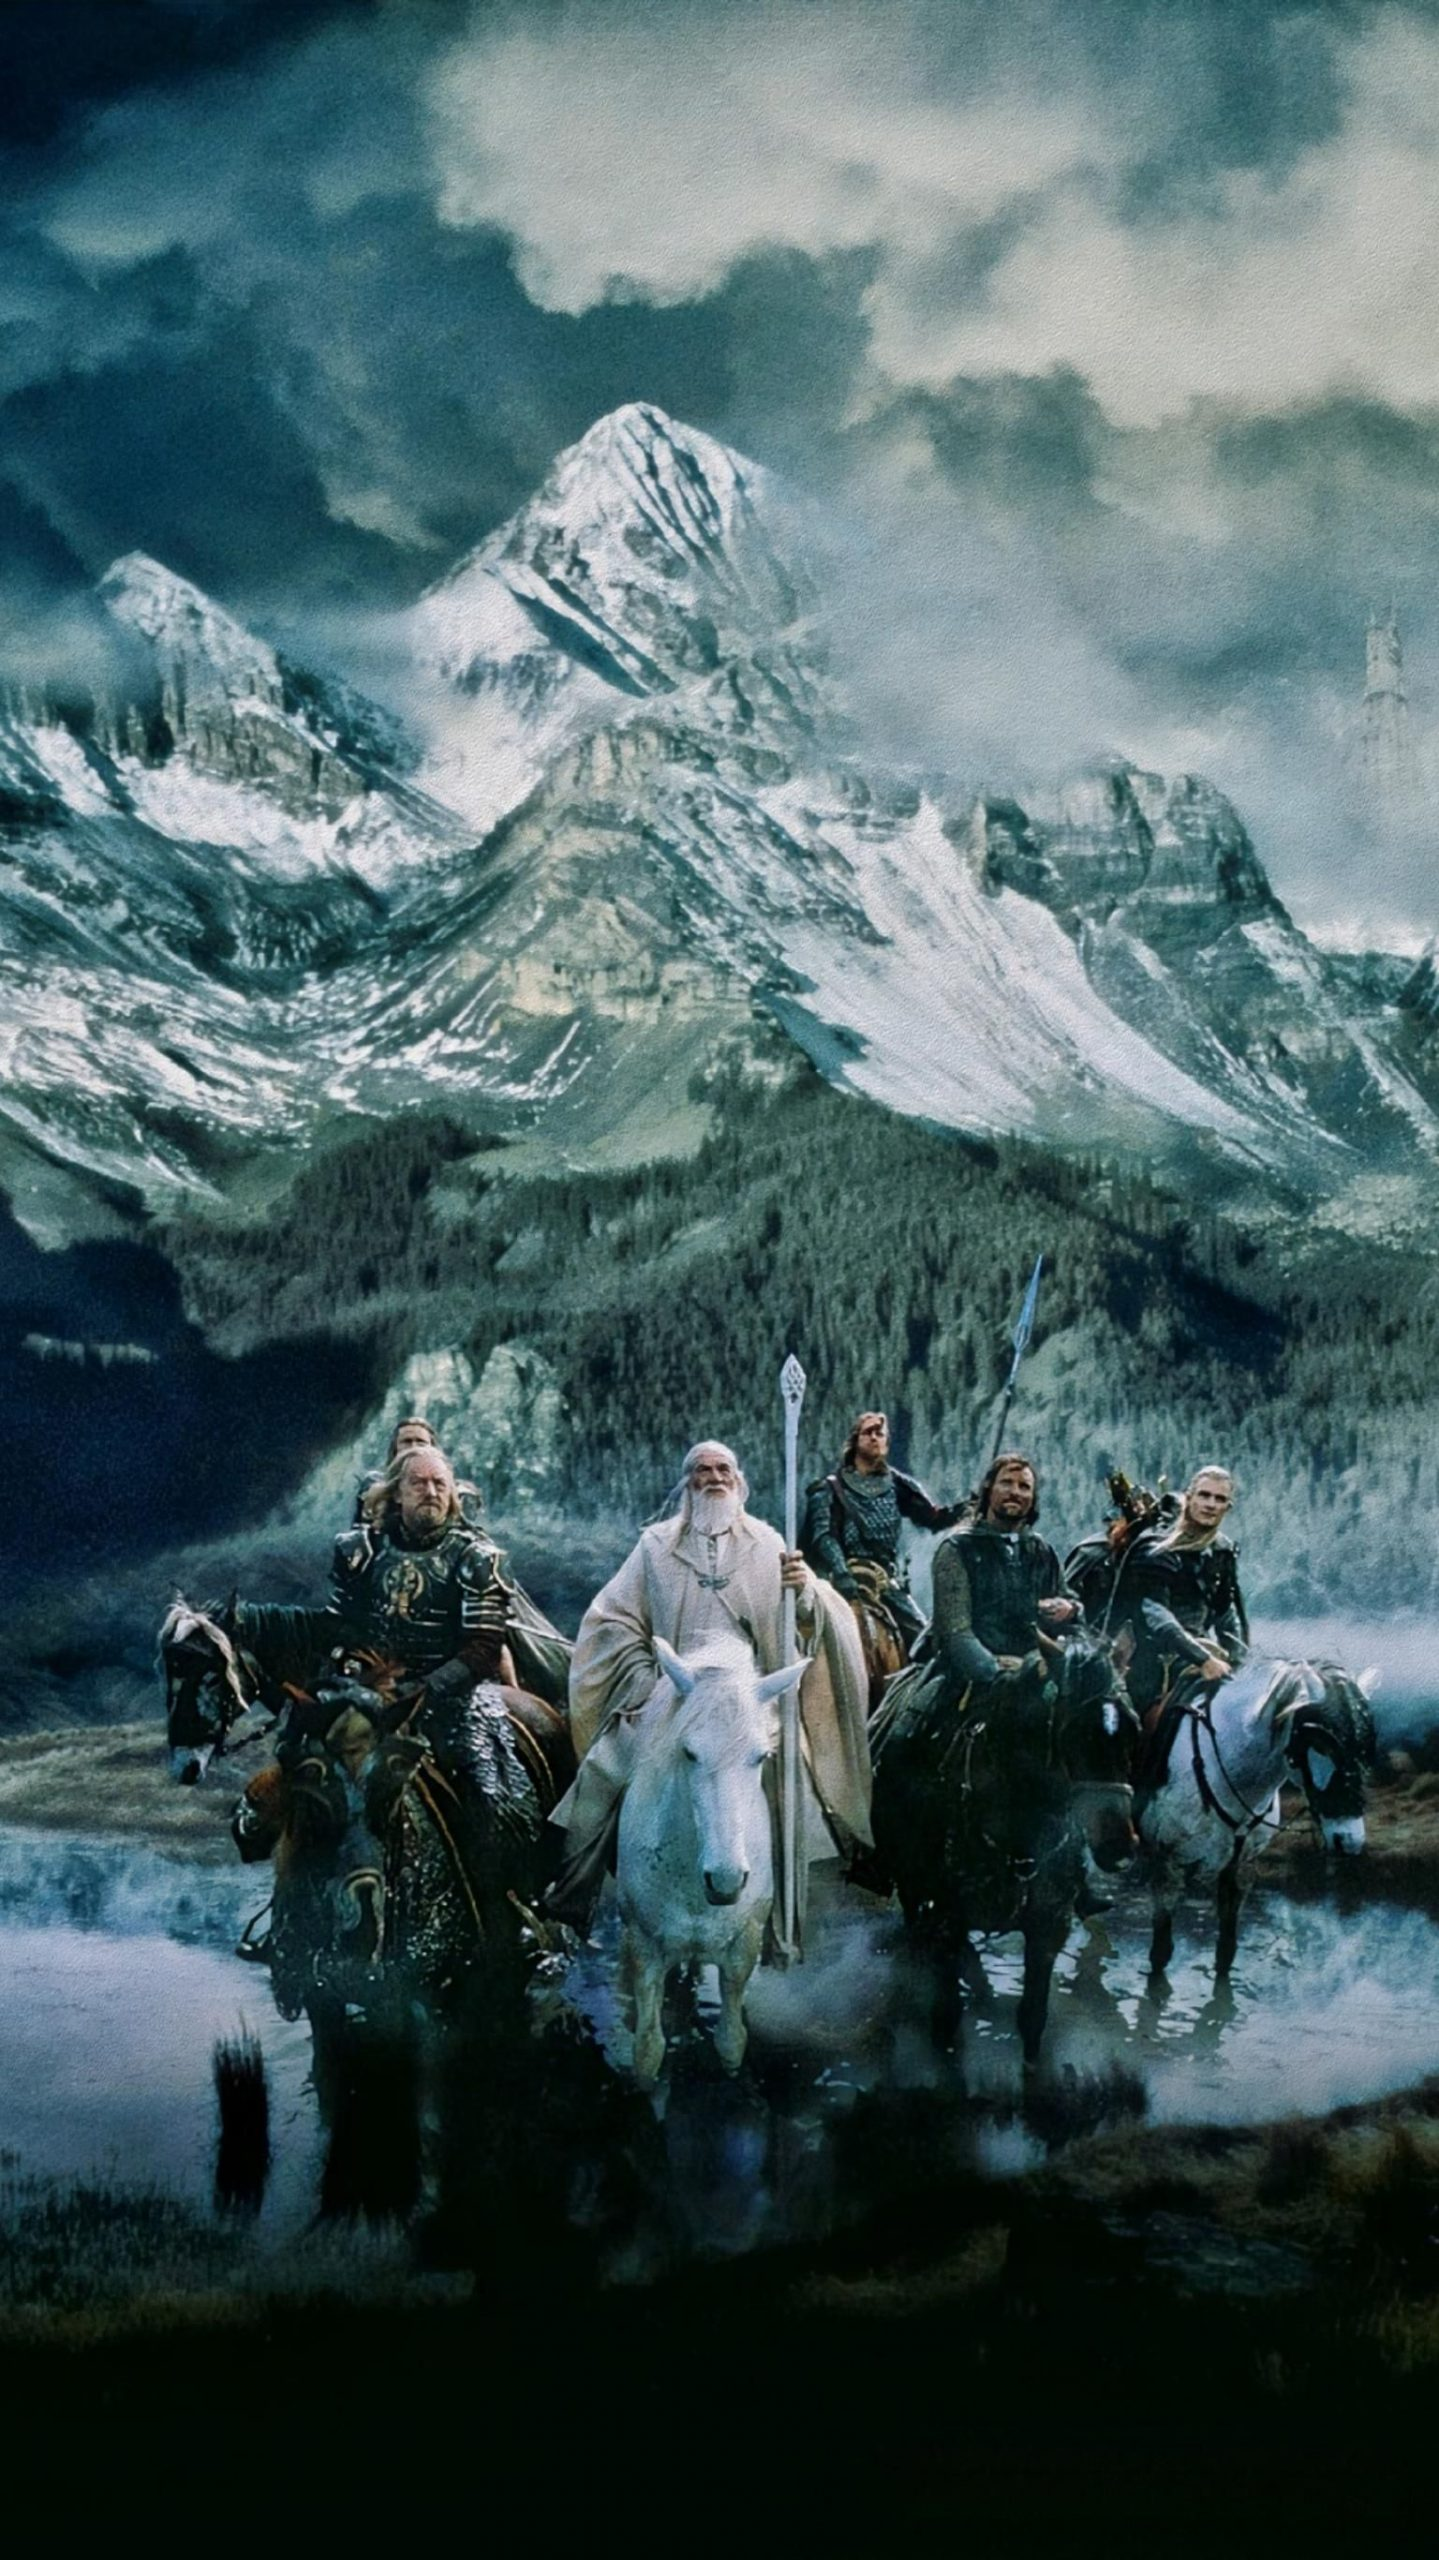 The Lord of the Rings The Return of the King 2003 Phone Wallpaper